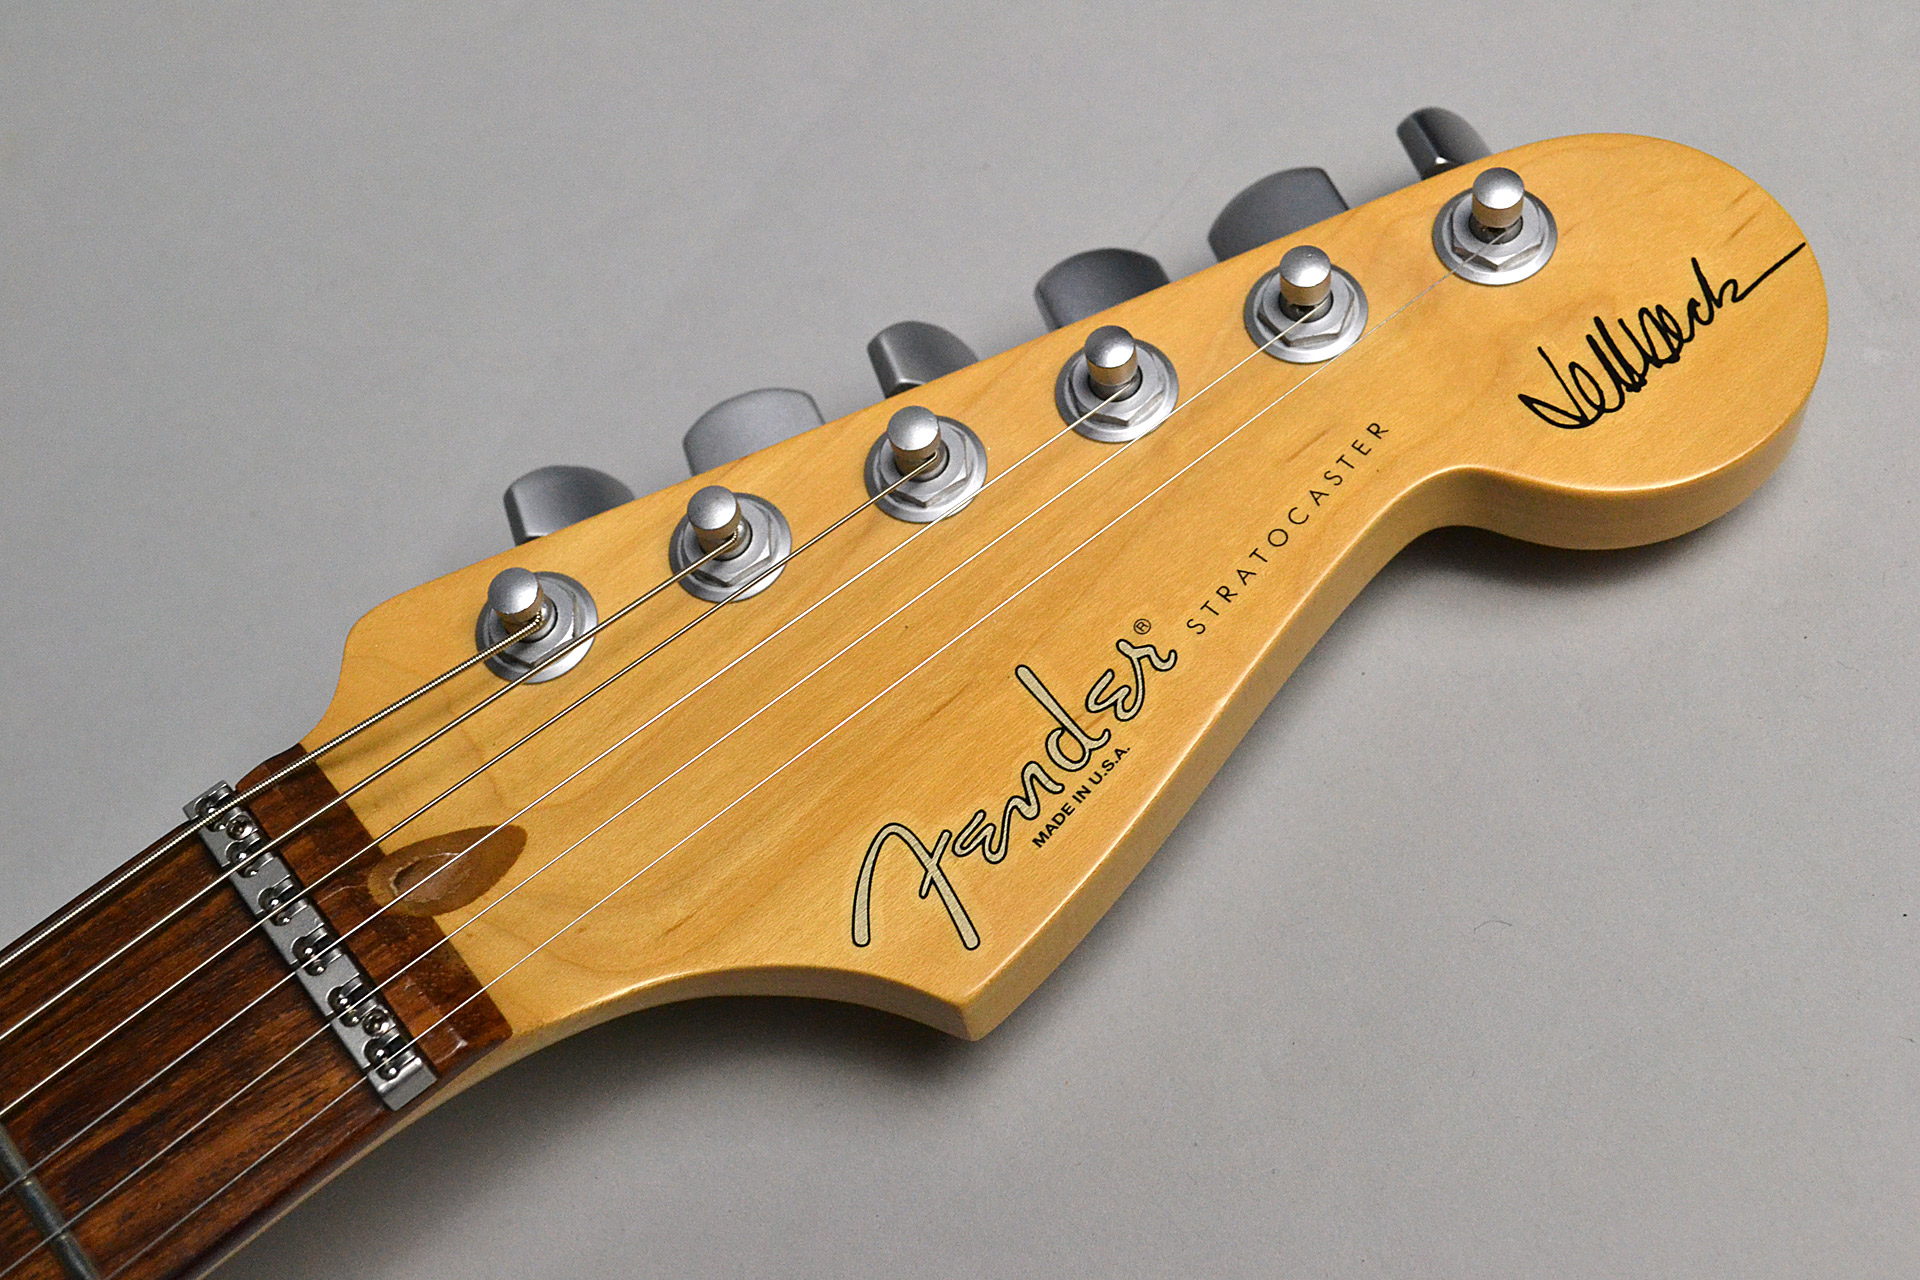 USED/ Jeff Beck Stratocaster Dual-coil Celamic Noise-less Pickupのヘッド画像